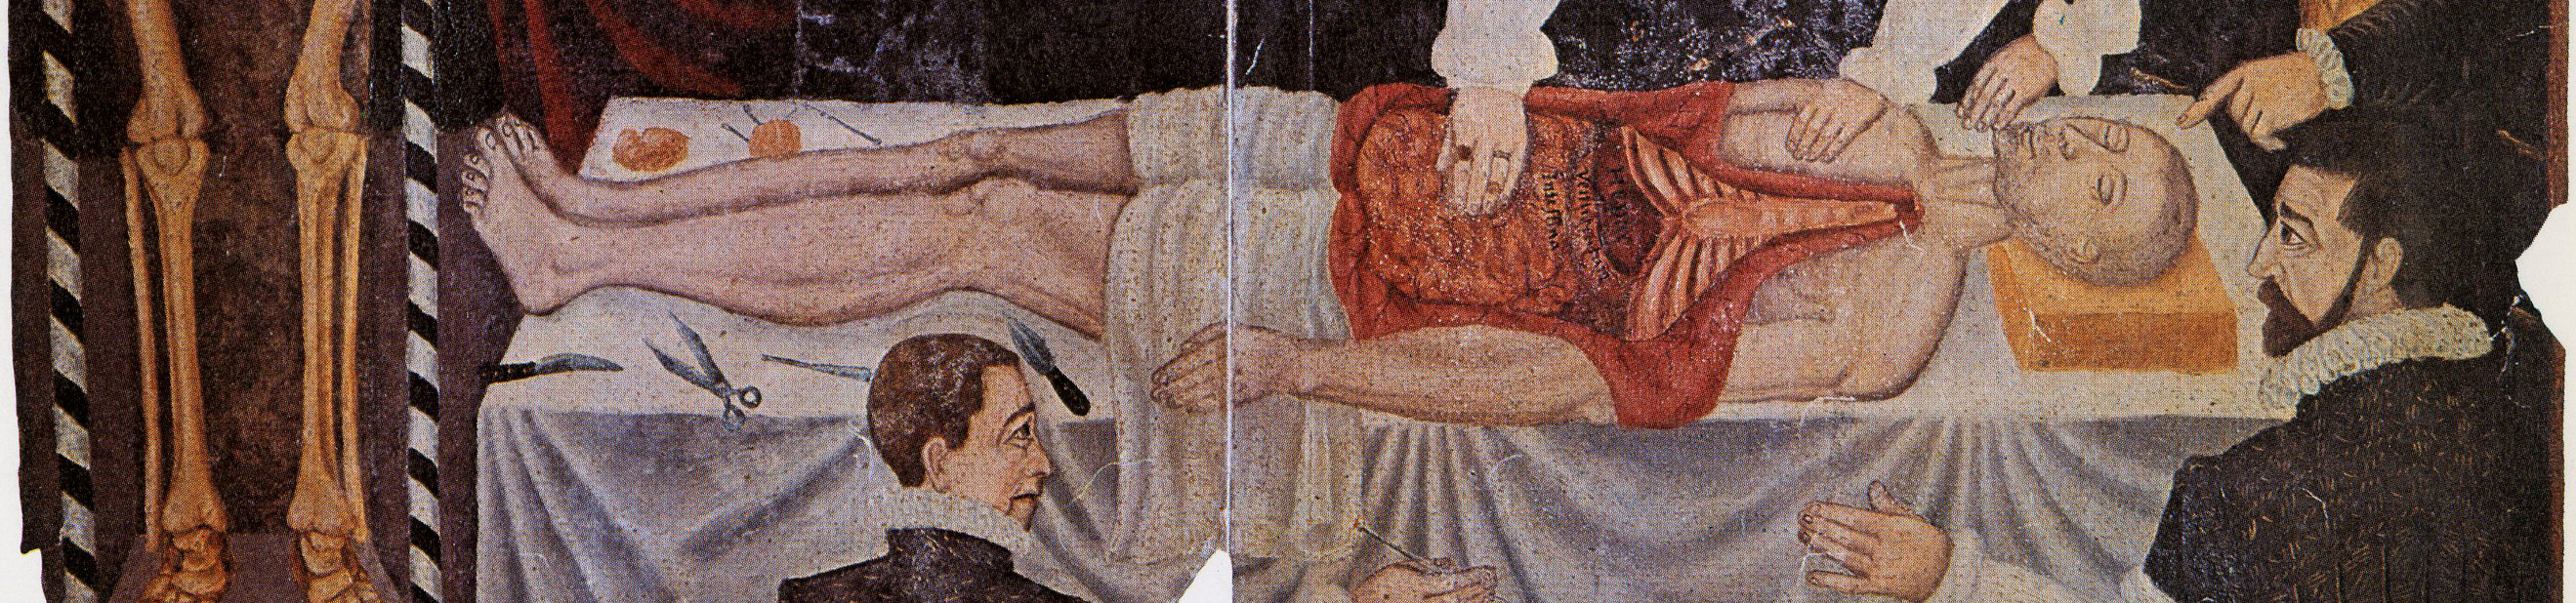 A painting of a human anatomy dissection from the Middle Ages. The image is from the library's Picture Collection.